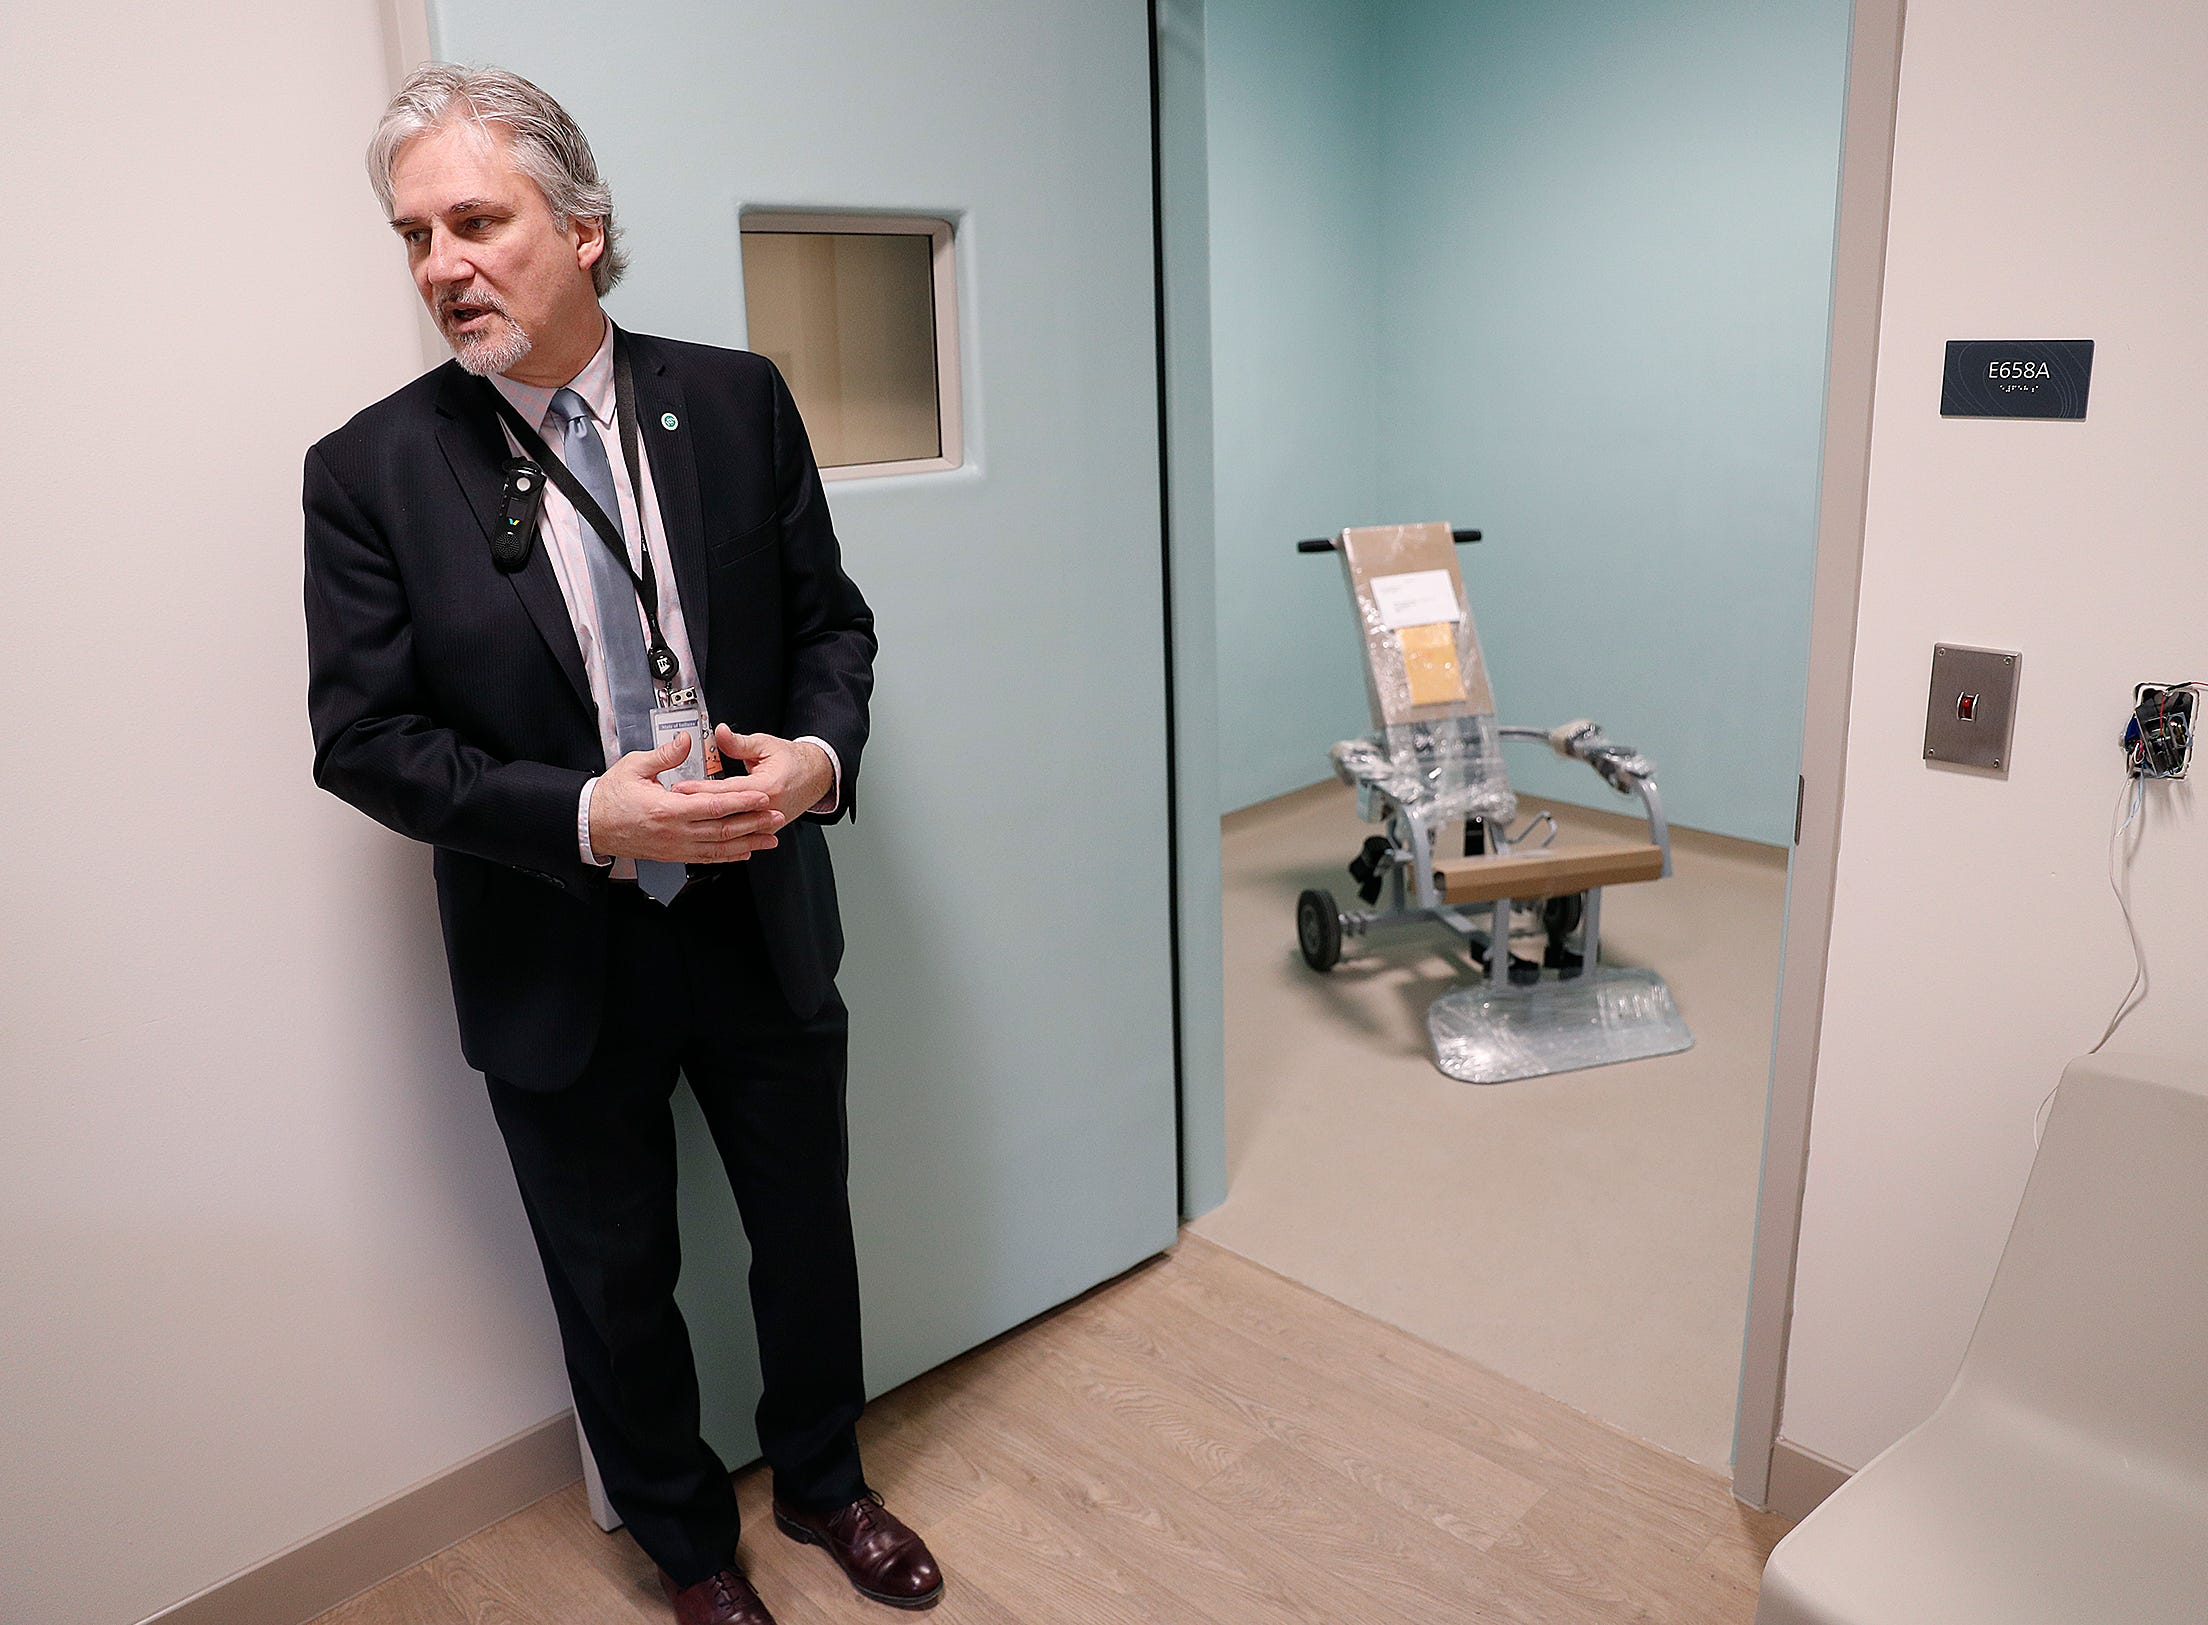 Jerry Sheward, M.D., shows one of the seclusion rooms in the new NeuroDiagnostic Institute, at 5435 E 16th St., will replace LaRue Carter as the center for mental health care on Wednesday, March 13, 2019.